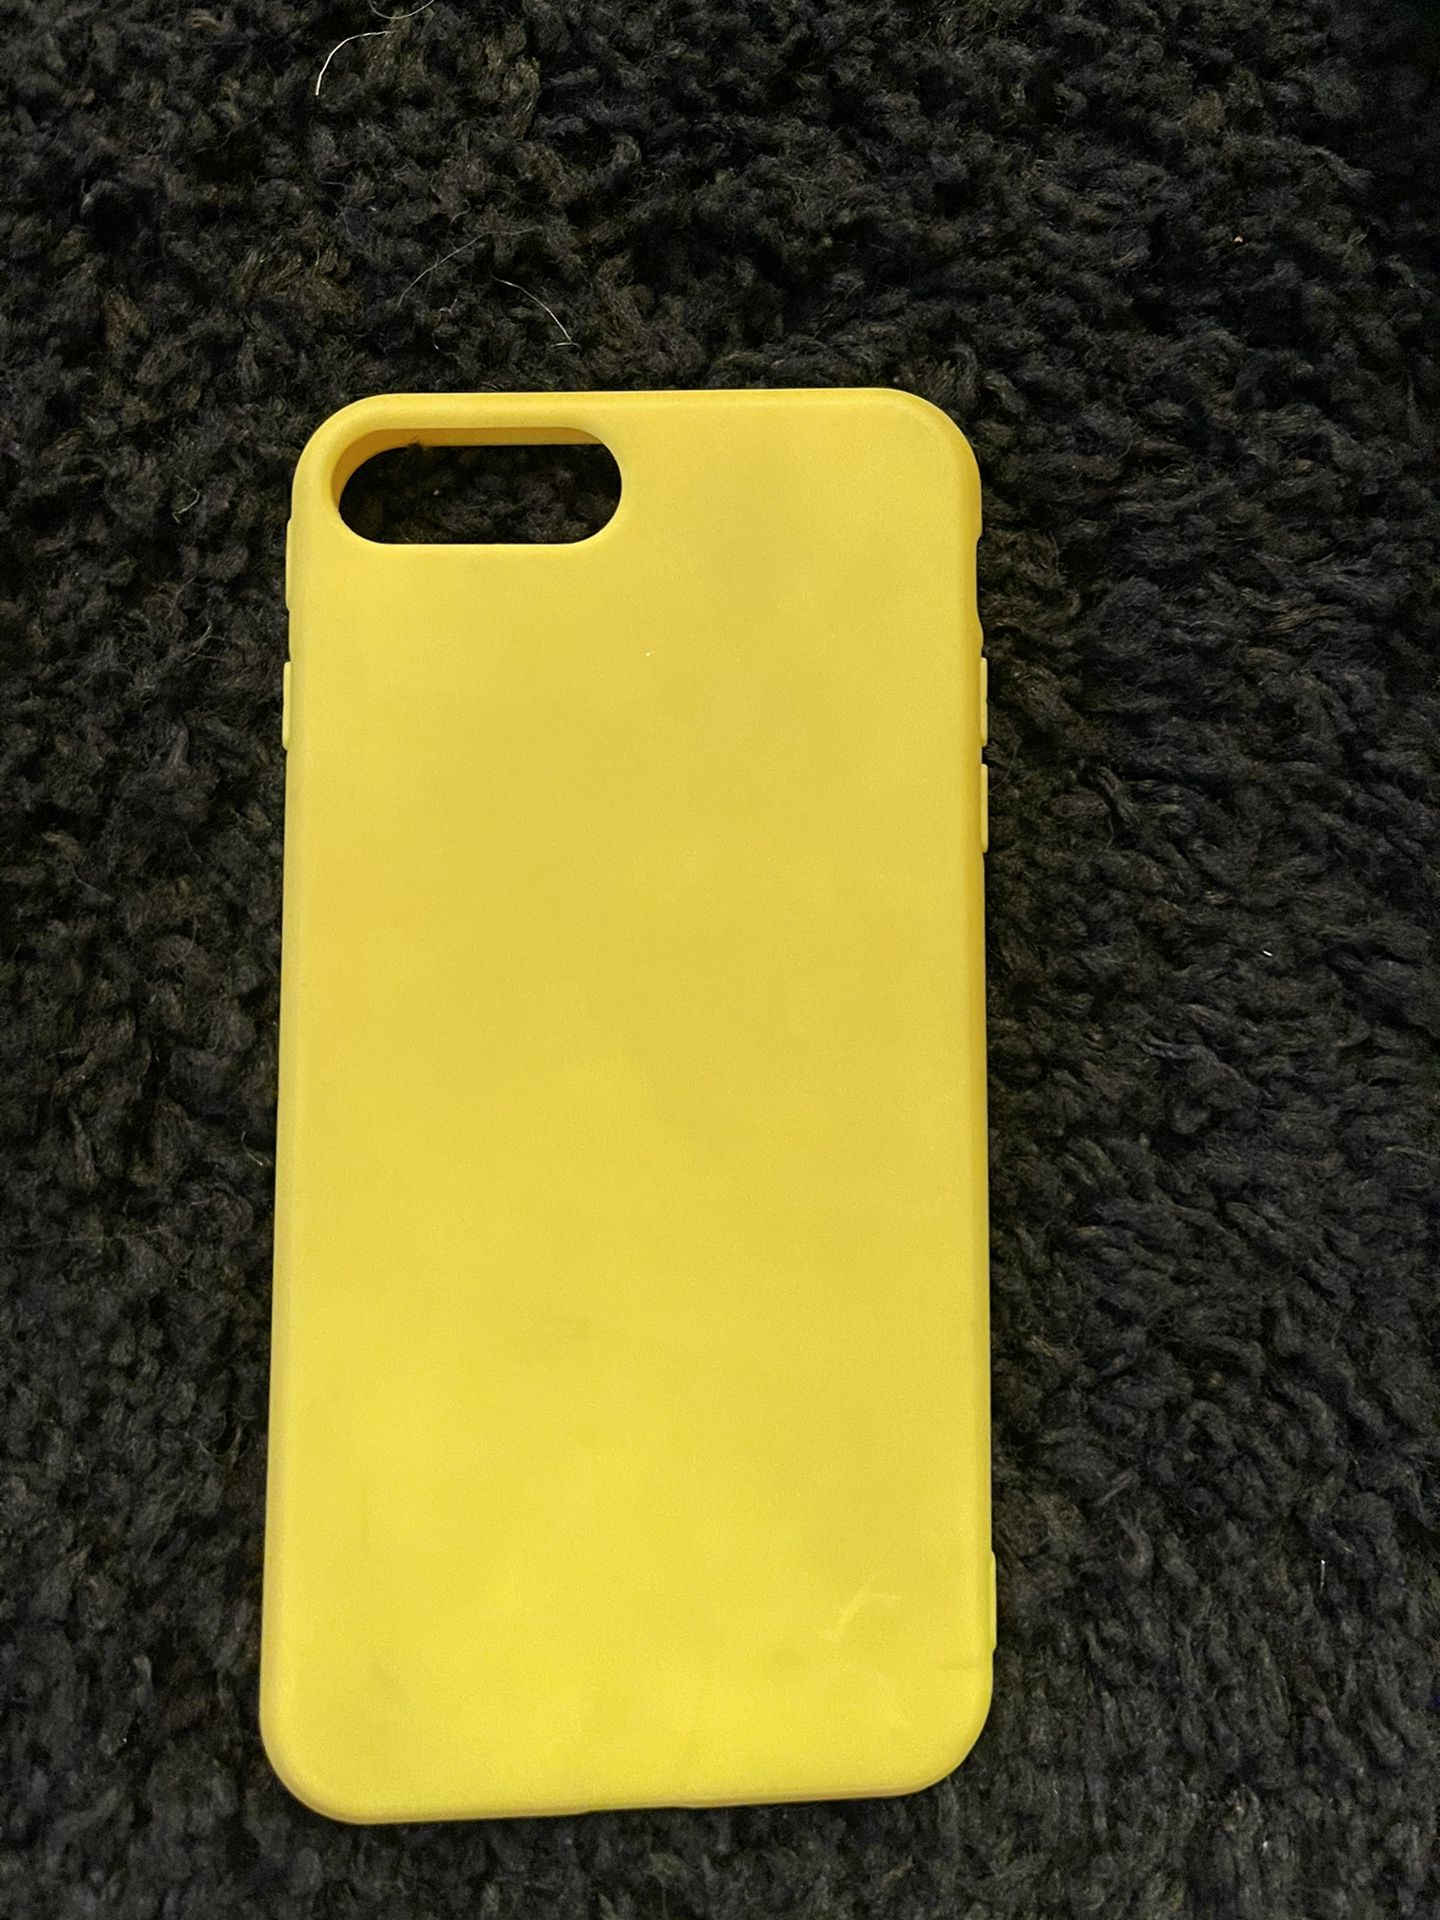 iPhone 8 Plus Cases Pt 1. All For 25&